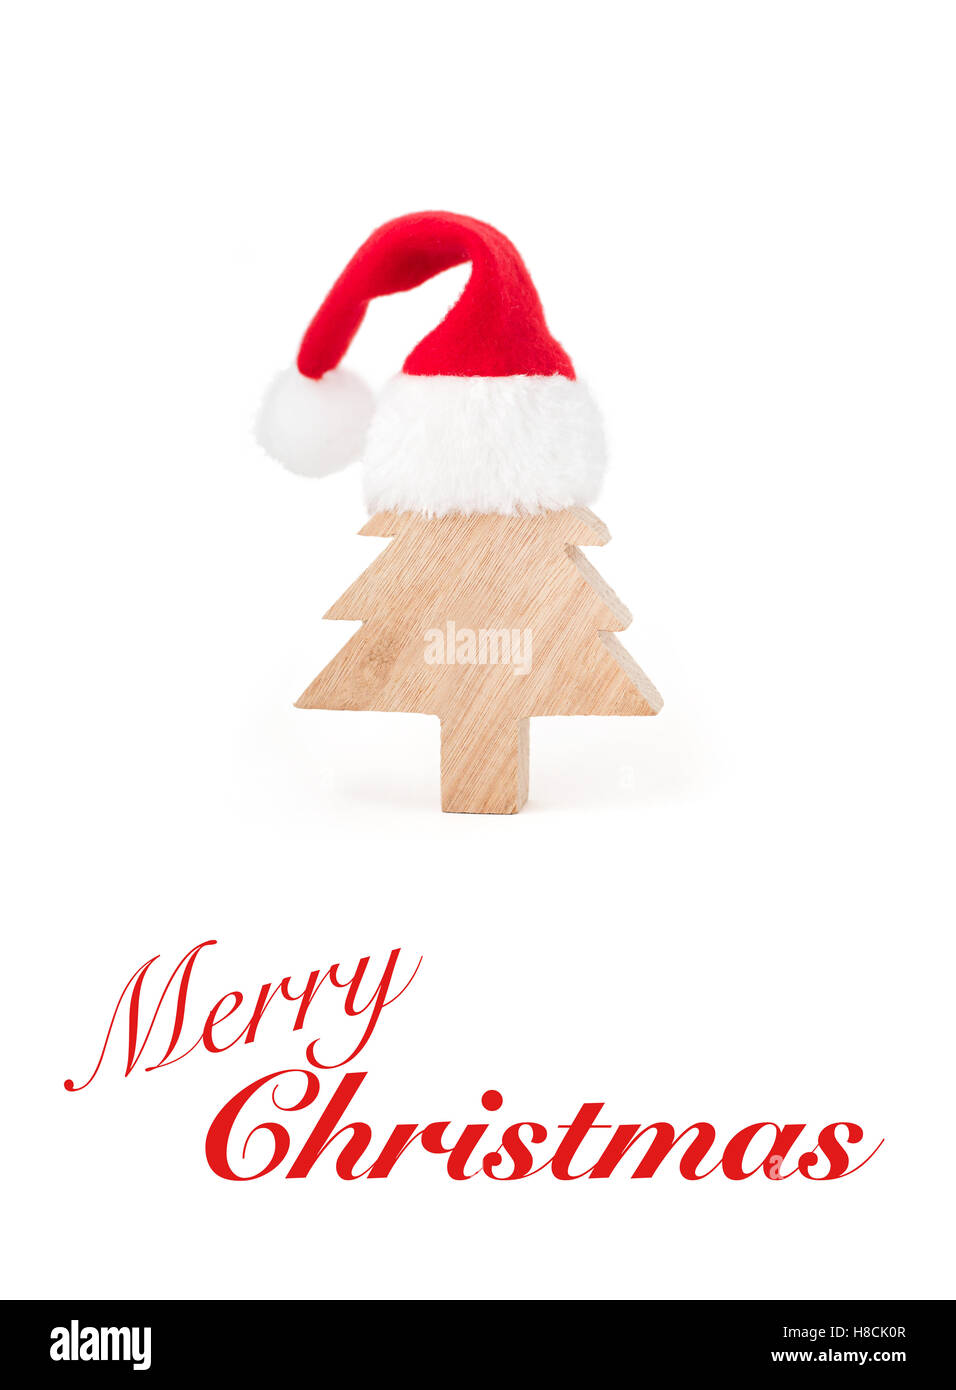 Cute Merry Christmas Greeting Card With A Wooden Christmas Tree And